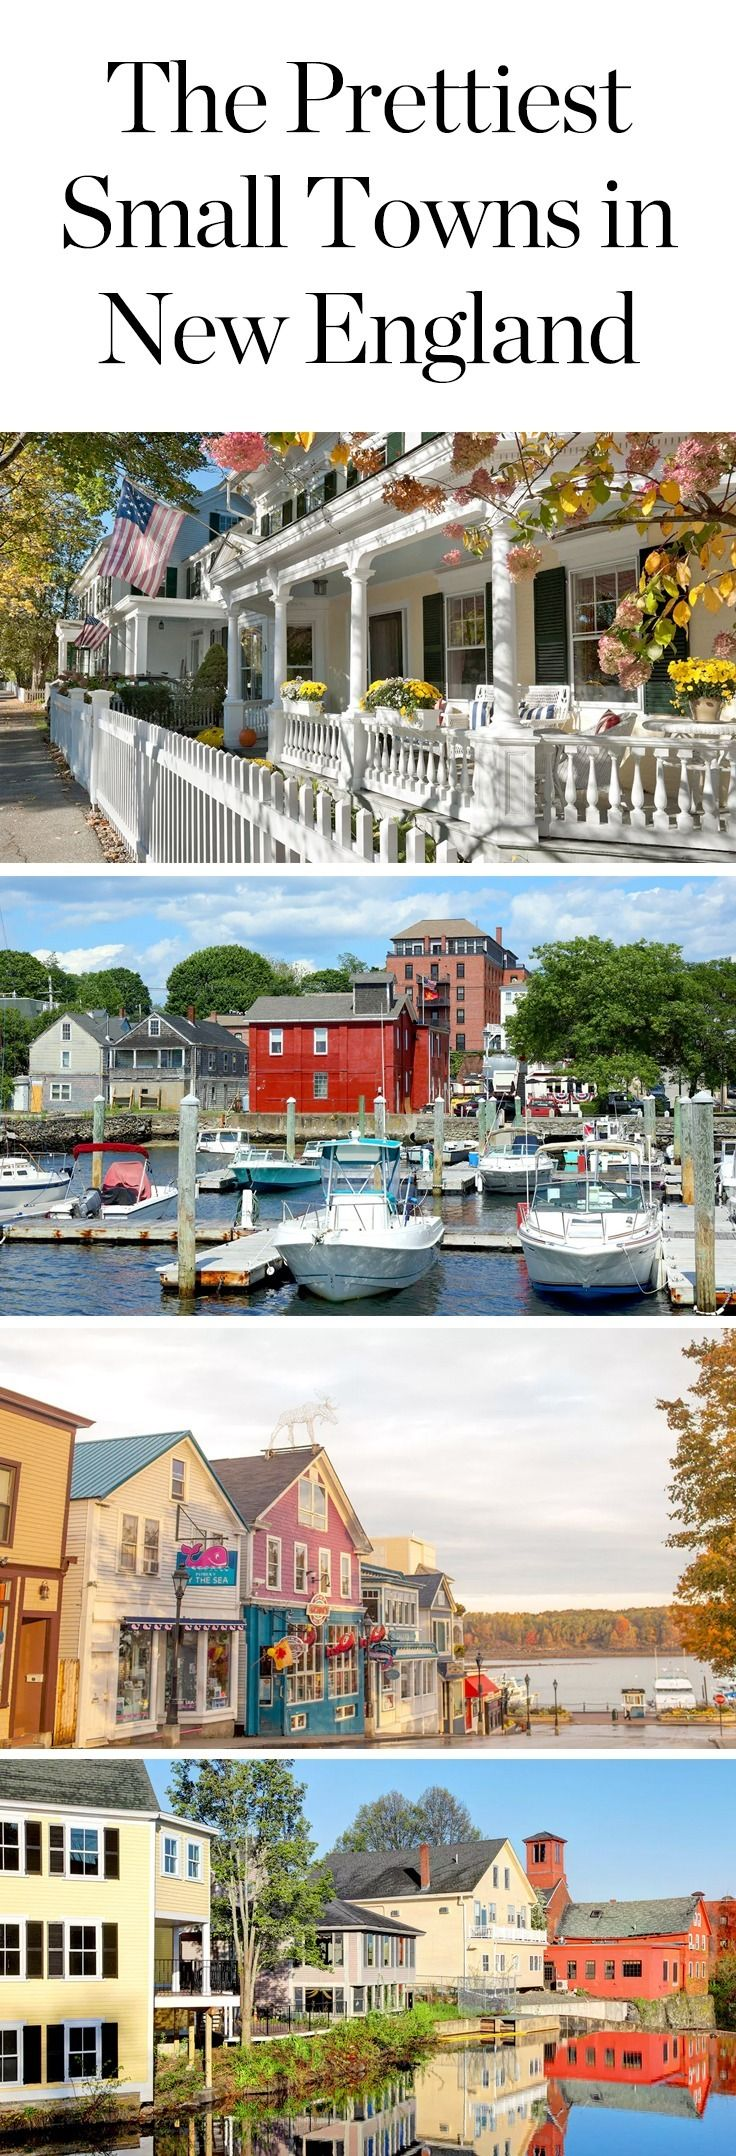 Here are 11 of the cutest New England spots that should definitely be on your list.